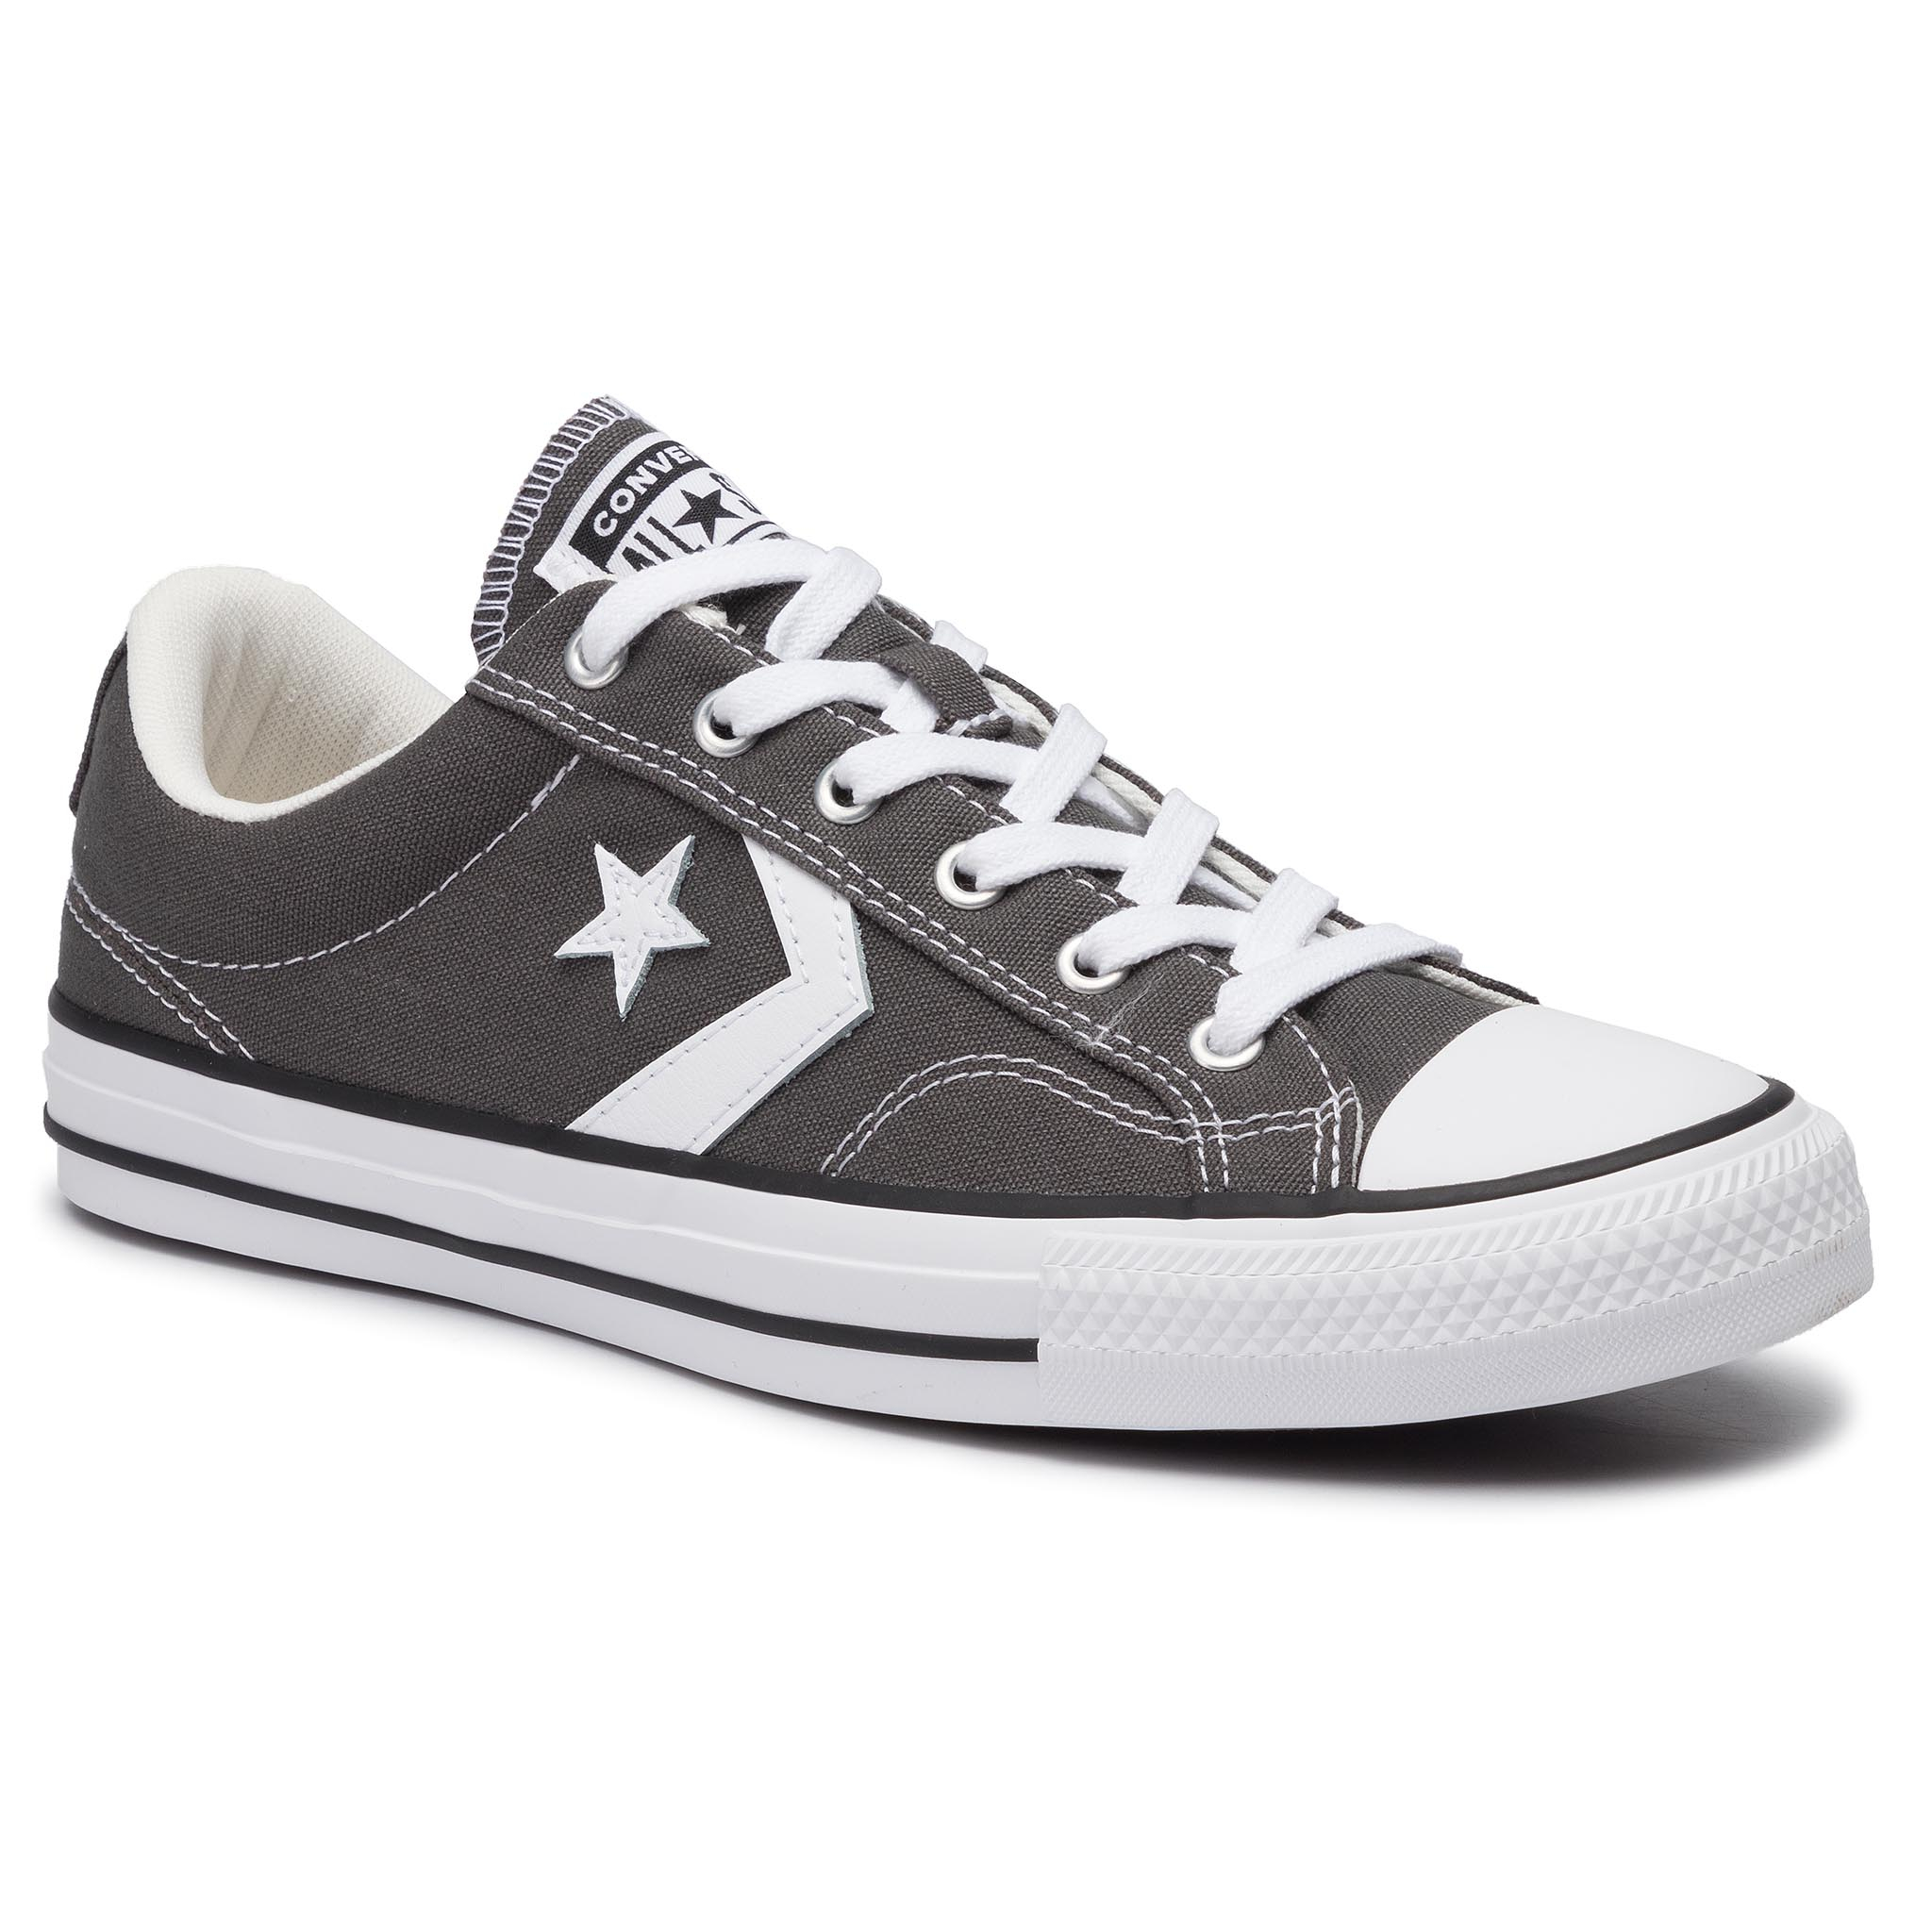 Teniși CONVERSE - Star Player Ox 165462C Carbon Grey/White/Black